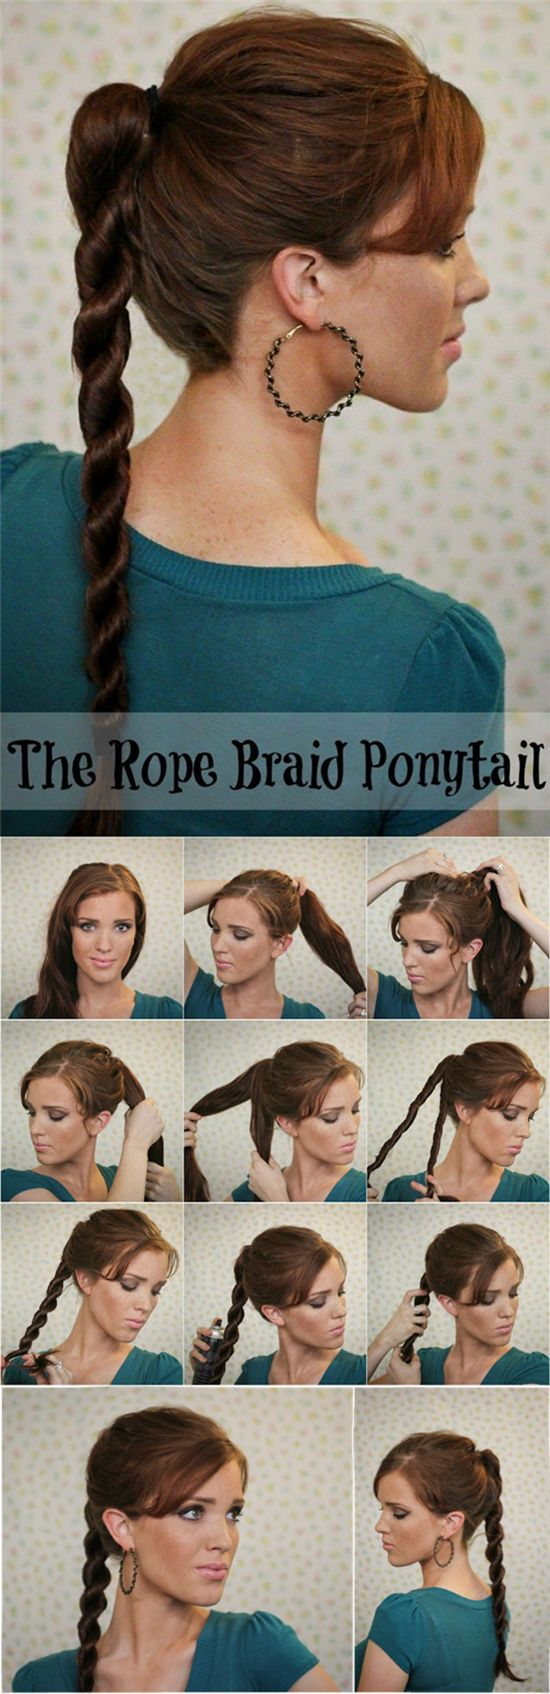 5 minutes hairstyles14